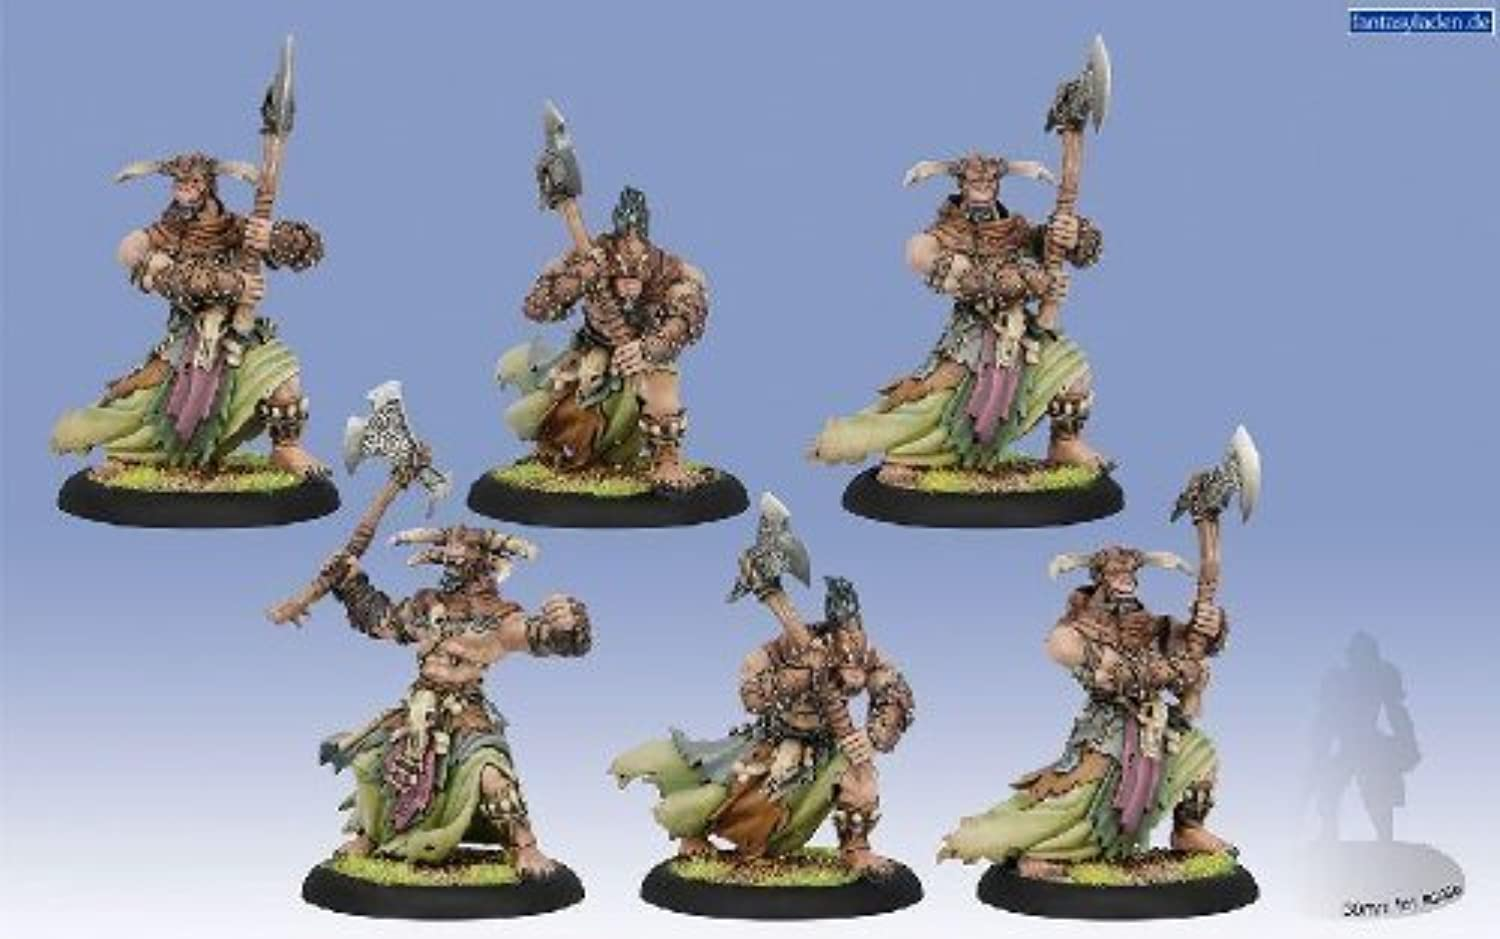 alta calidad Hordes Circle Orboros Tharn Ravagers Unit (Plastic, 6 Figuras, PIP72066) PIP72066) PIP72066) by Privateer Press